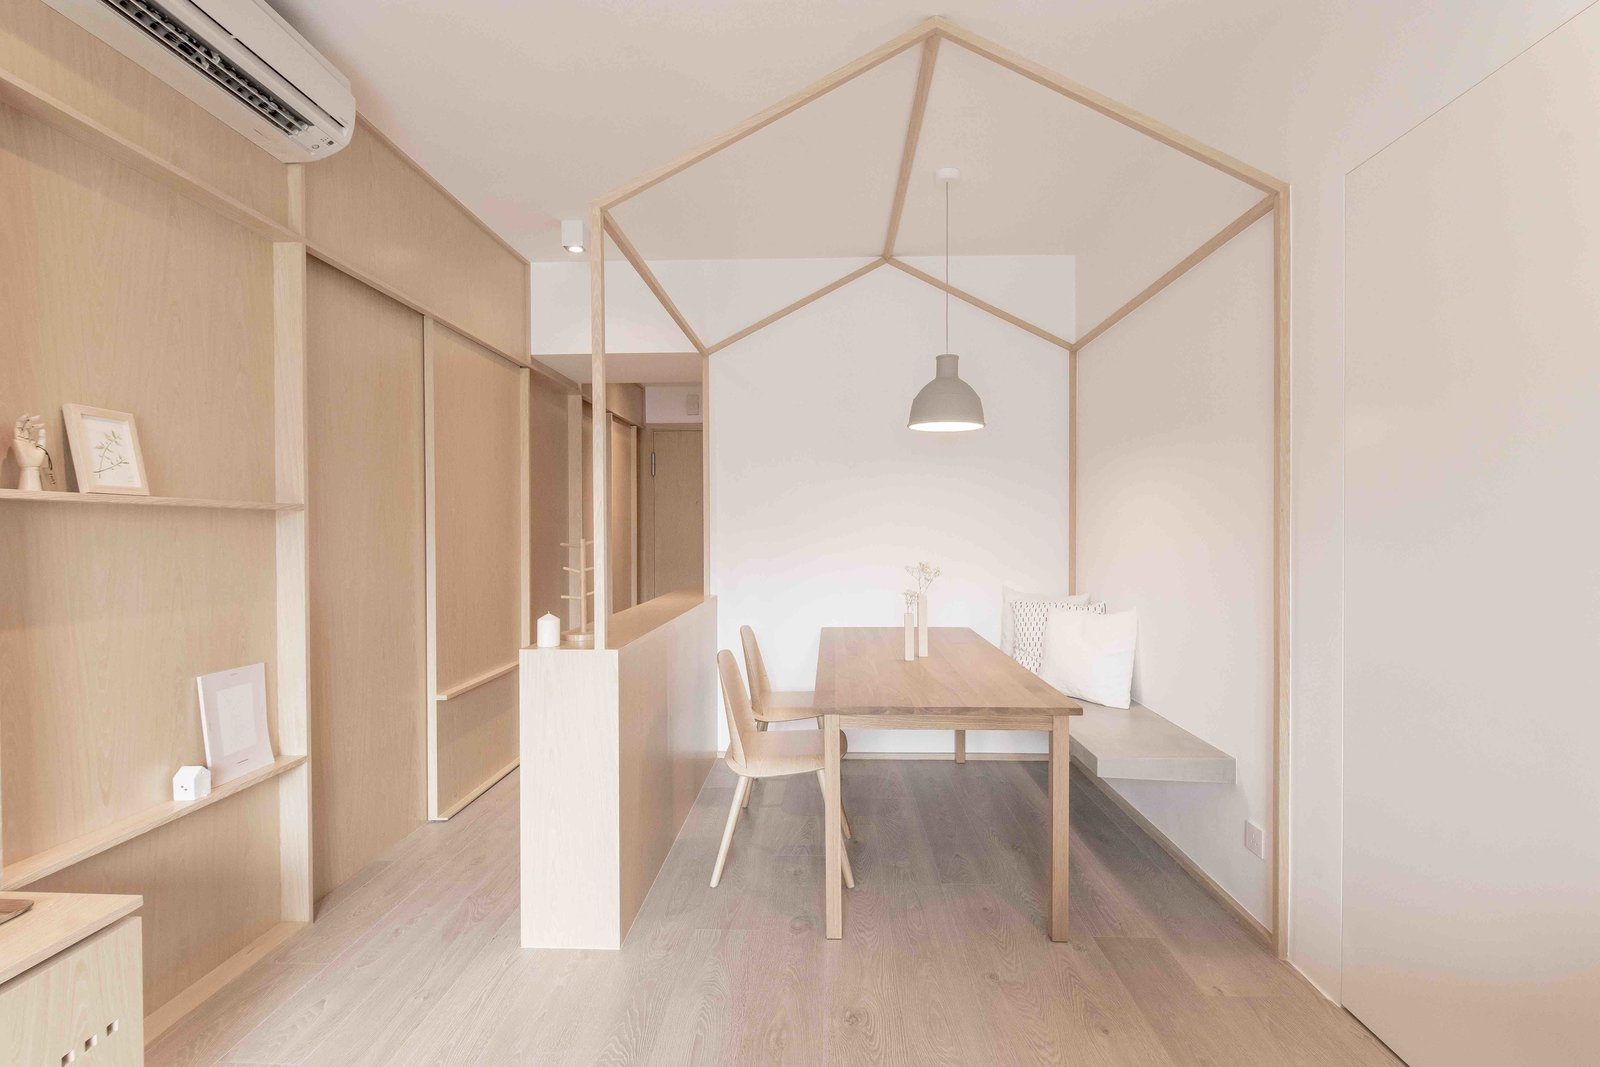 Dining, Chair, Table, Bench, Pendant, Ceiling, and Light Hardwood  Best Dining Light Hardwood Chair Bench Table Pendant Ceiling Photos from An Origami-Inspired Apartment in Hong Kong With Tons of Smart Storage